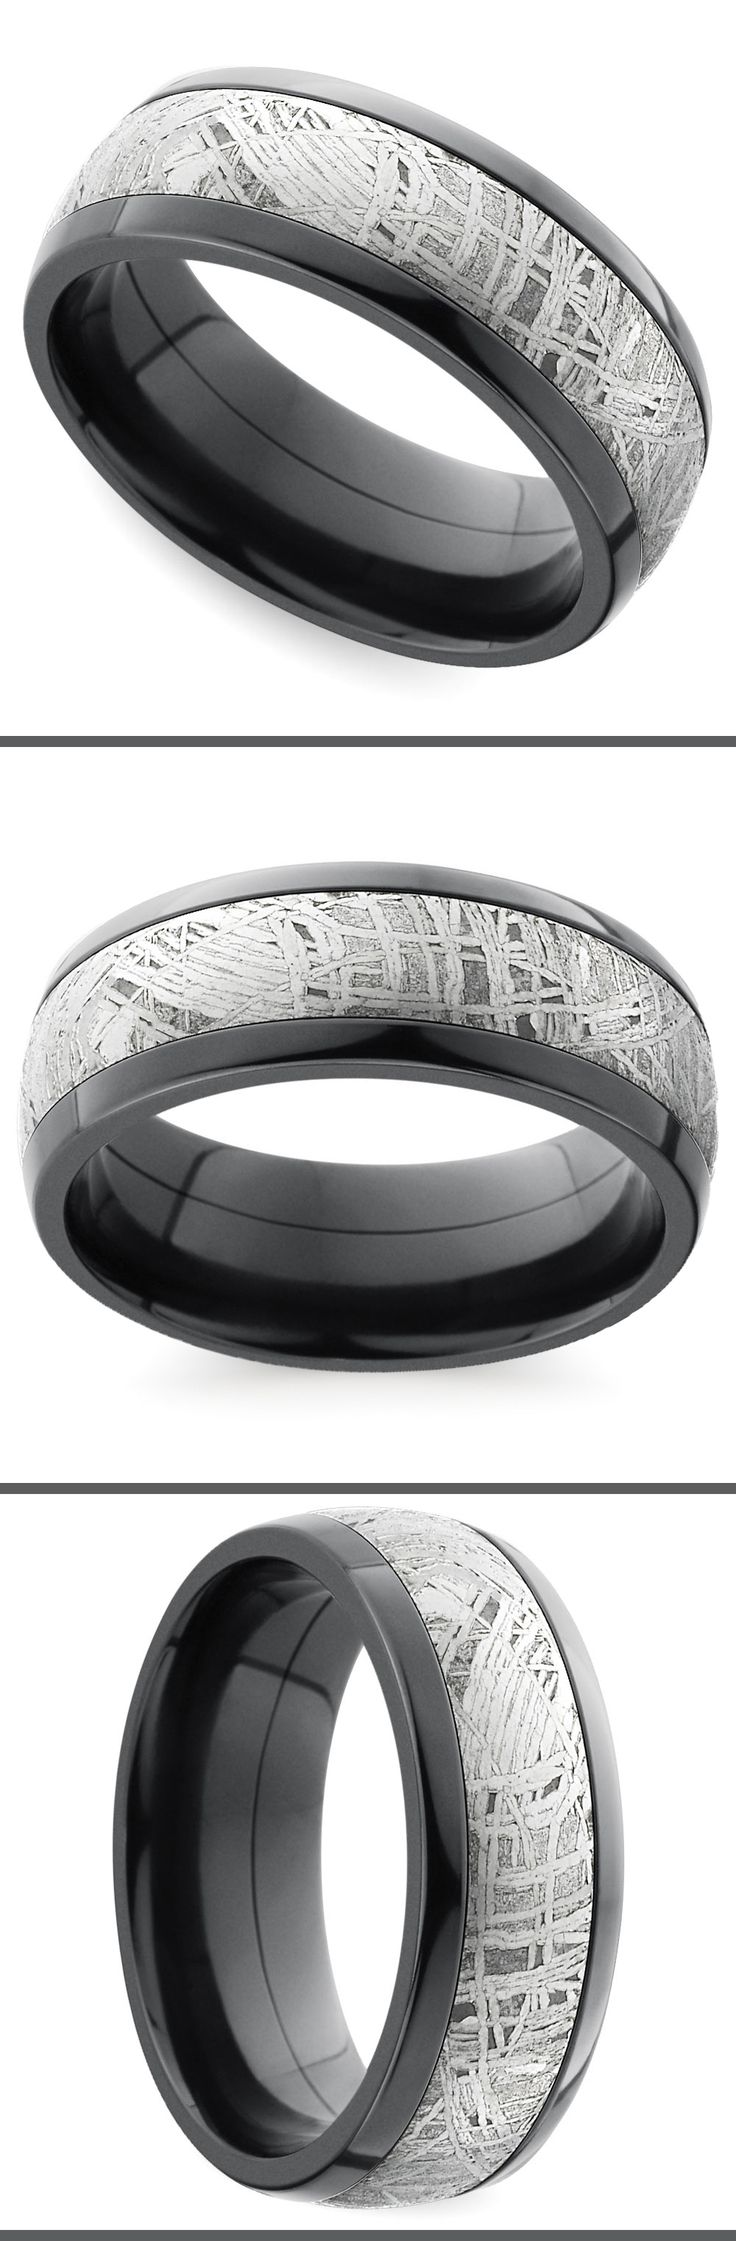 mens wedding rings tire tread wedding band A classic 7 mm domed band is made modern with black zirconium and a genuine Gibeon